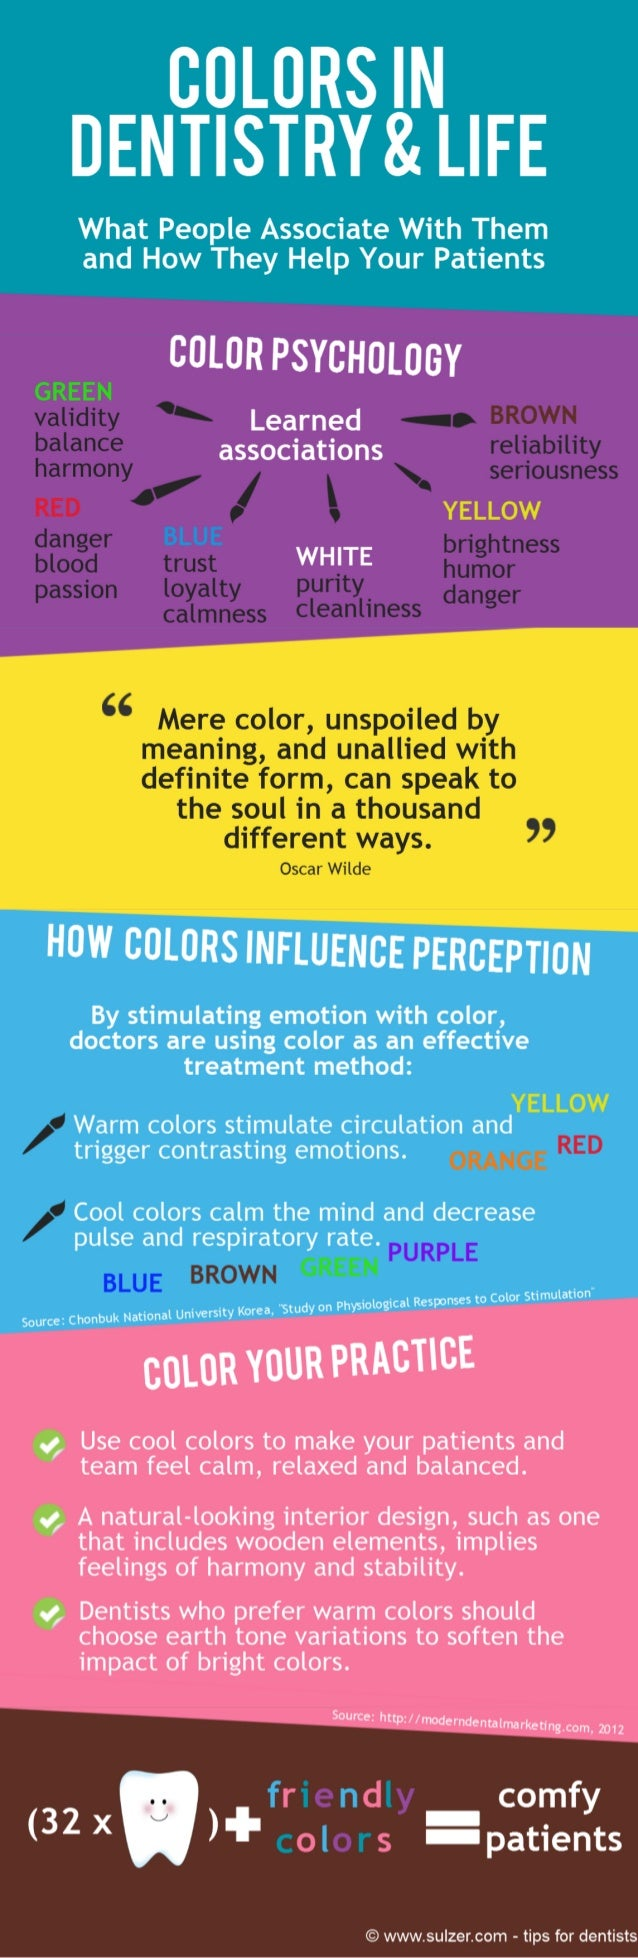 Colors in Dentistry